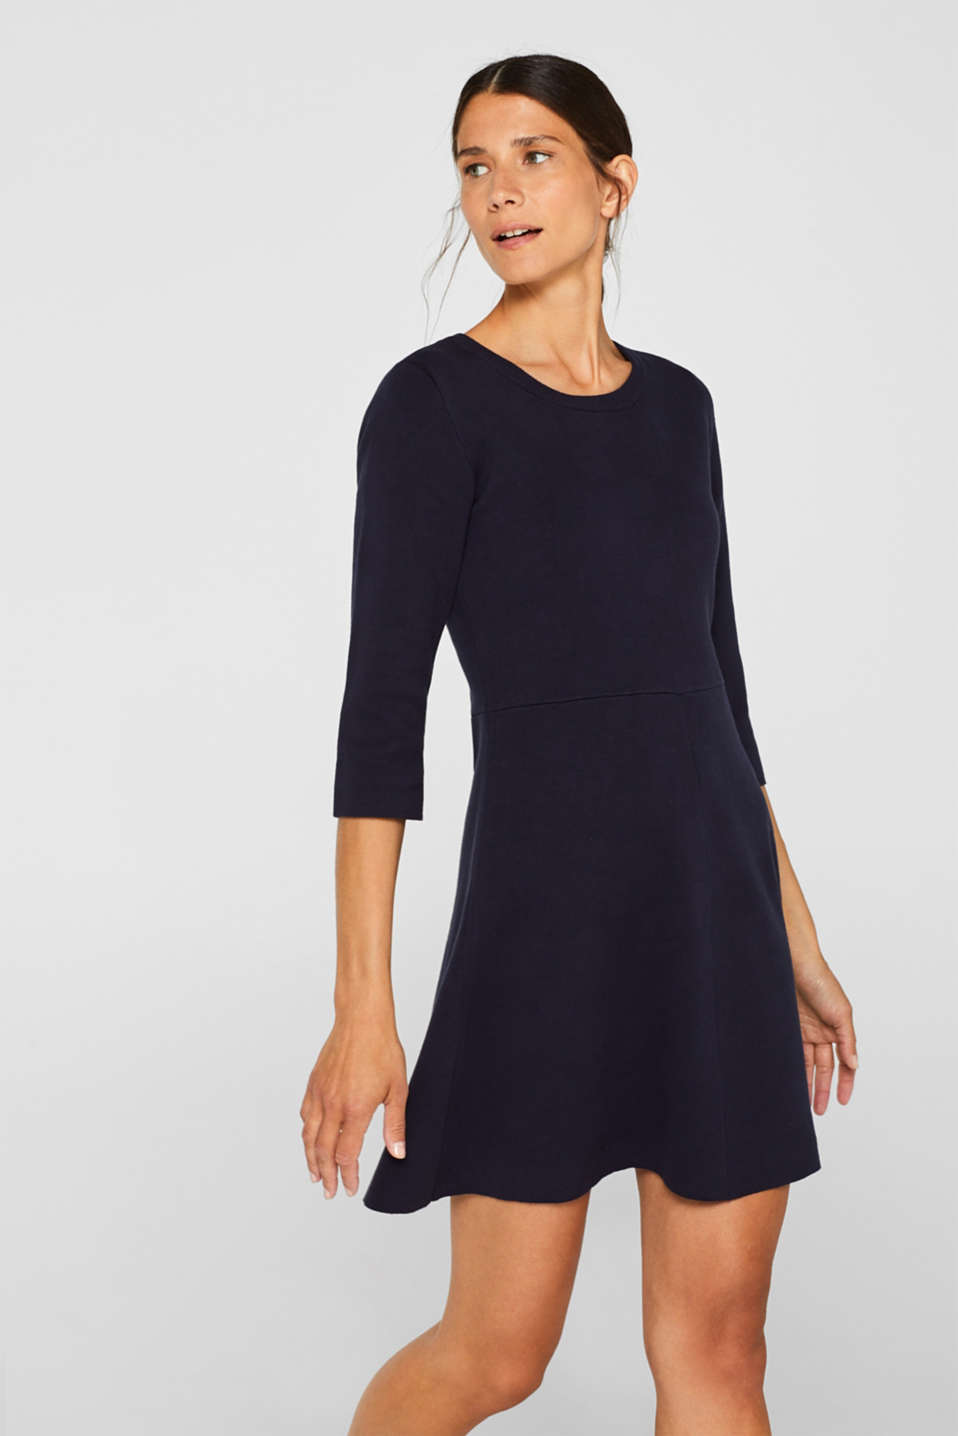 Compact knit dress in an A-line silhouette, NAVY, detail image number 0